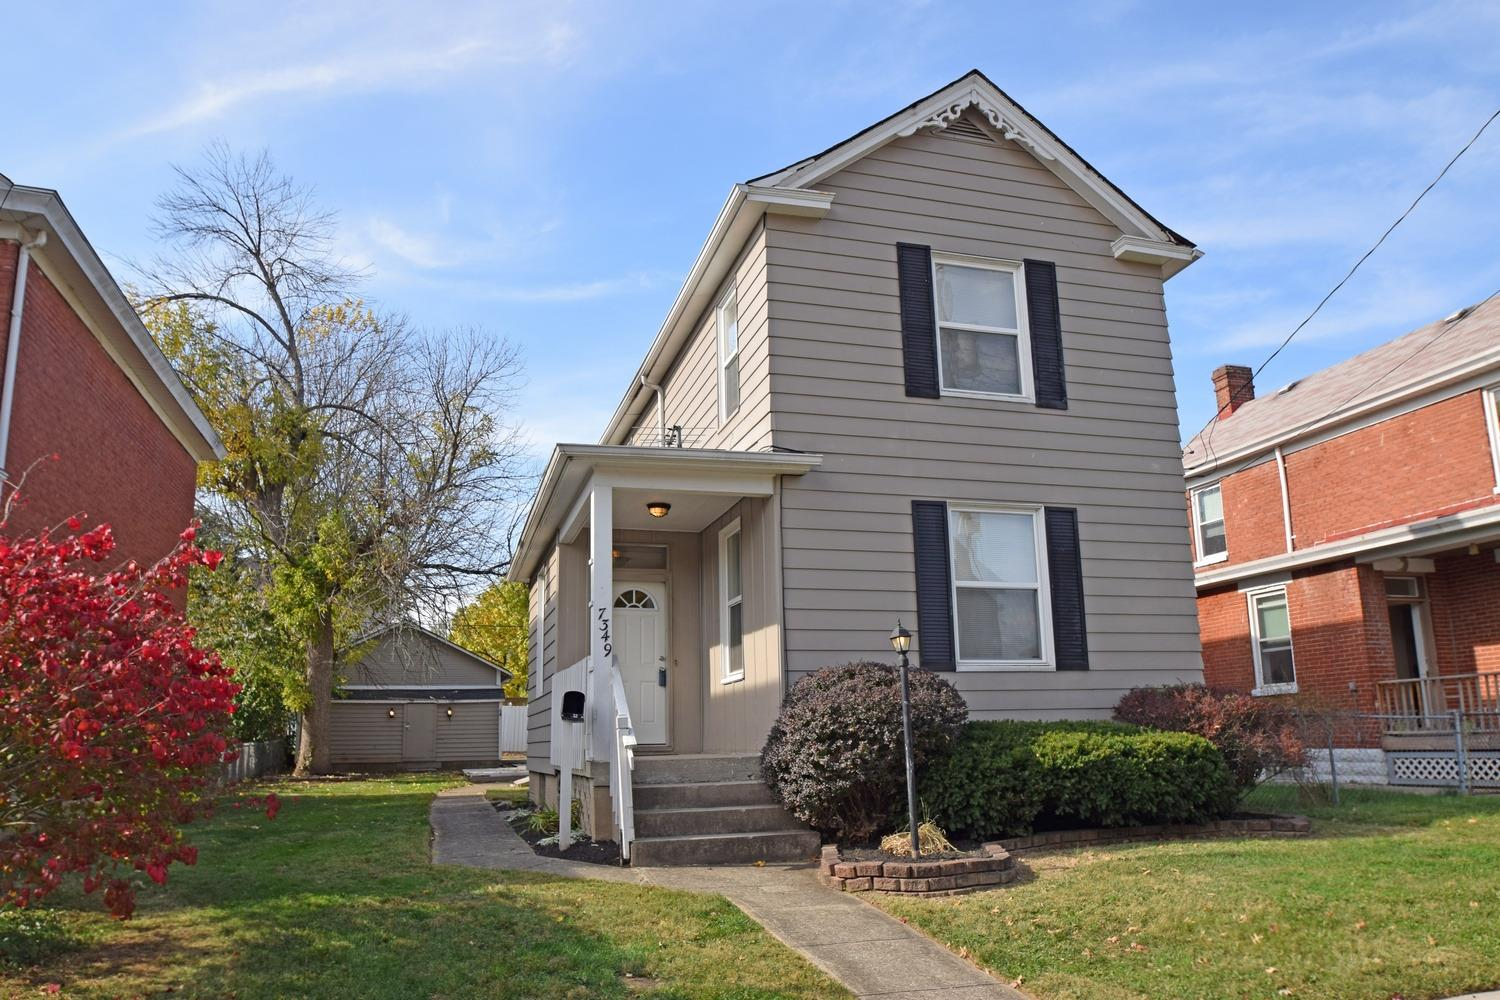 7349 Maple Ave Mt Healthy Oh 45231 Listing Details Mls